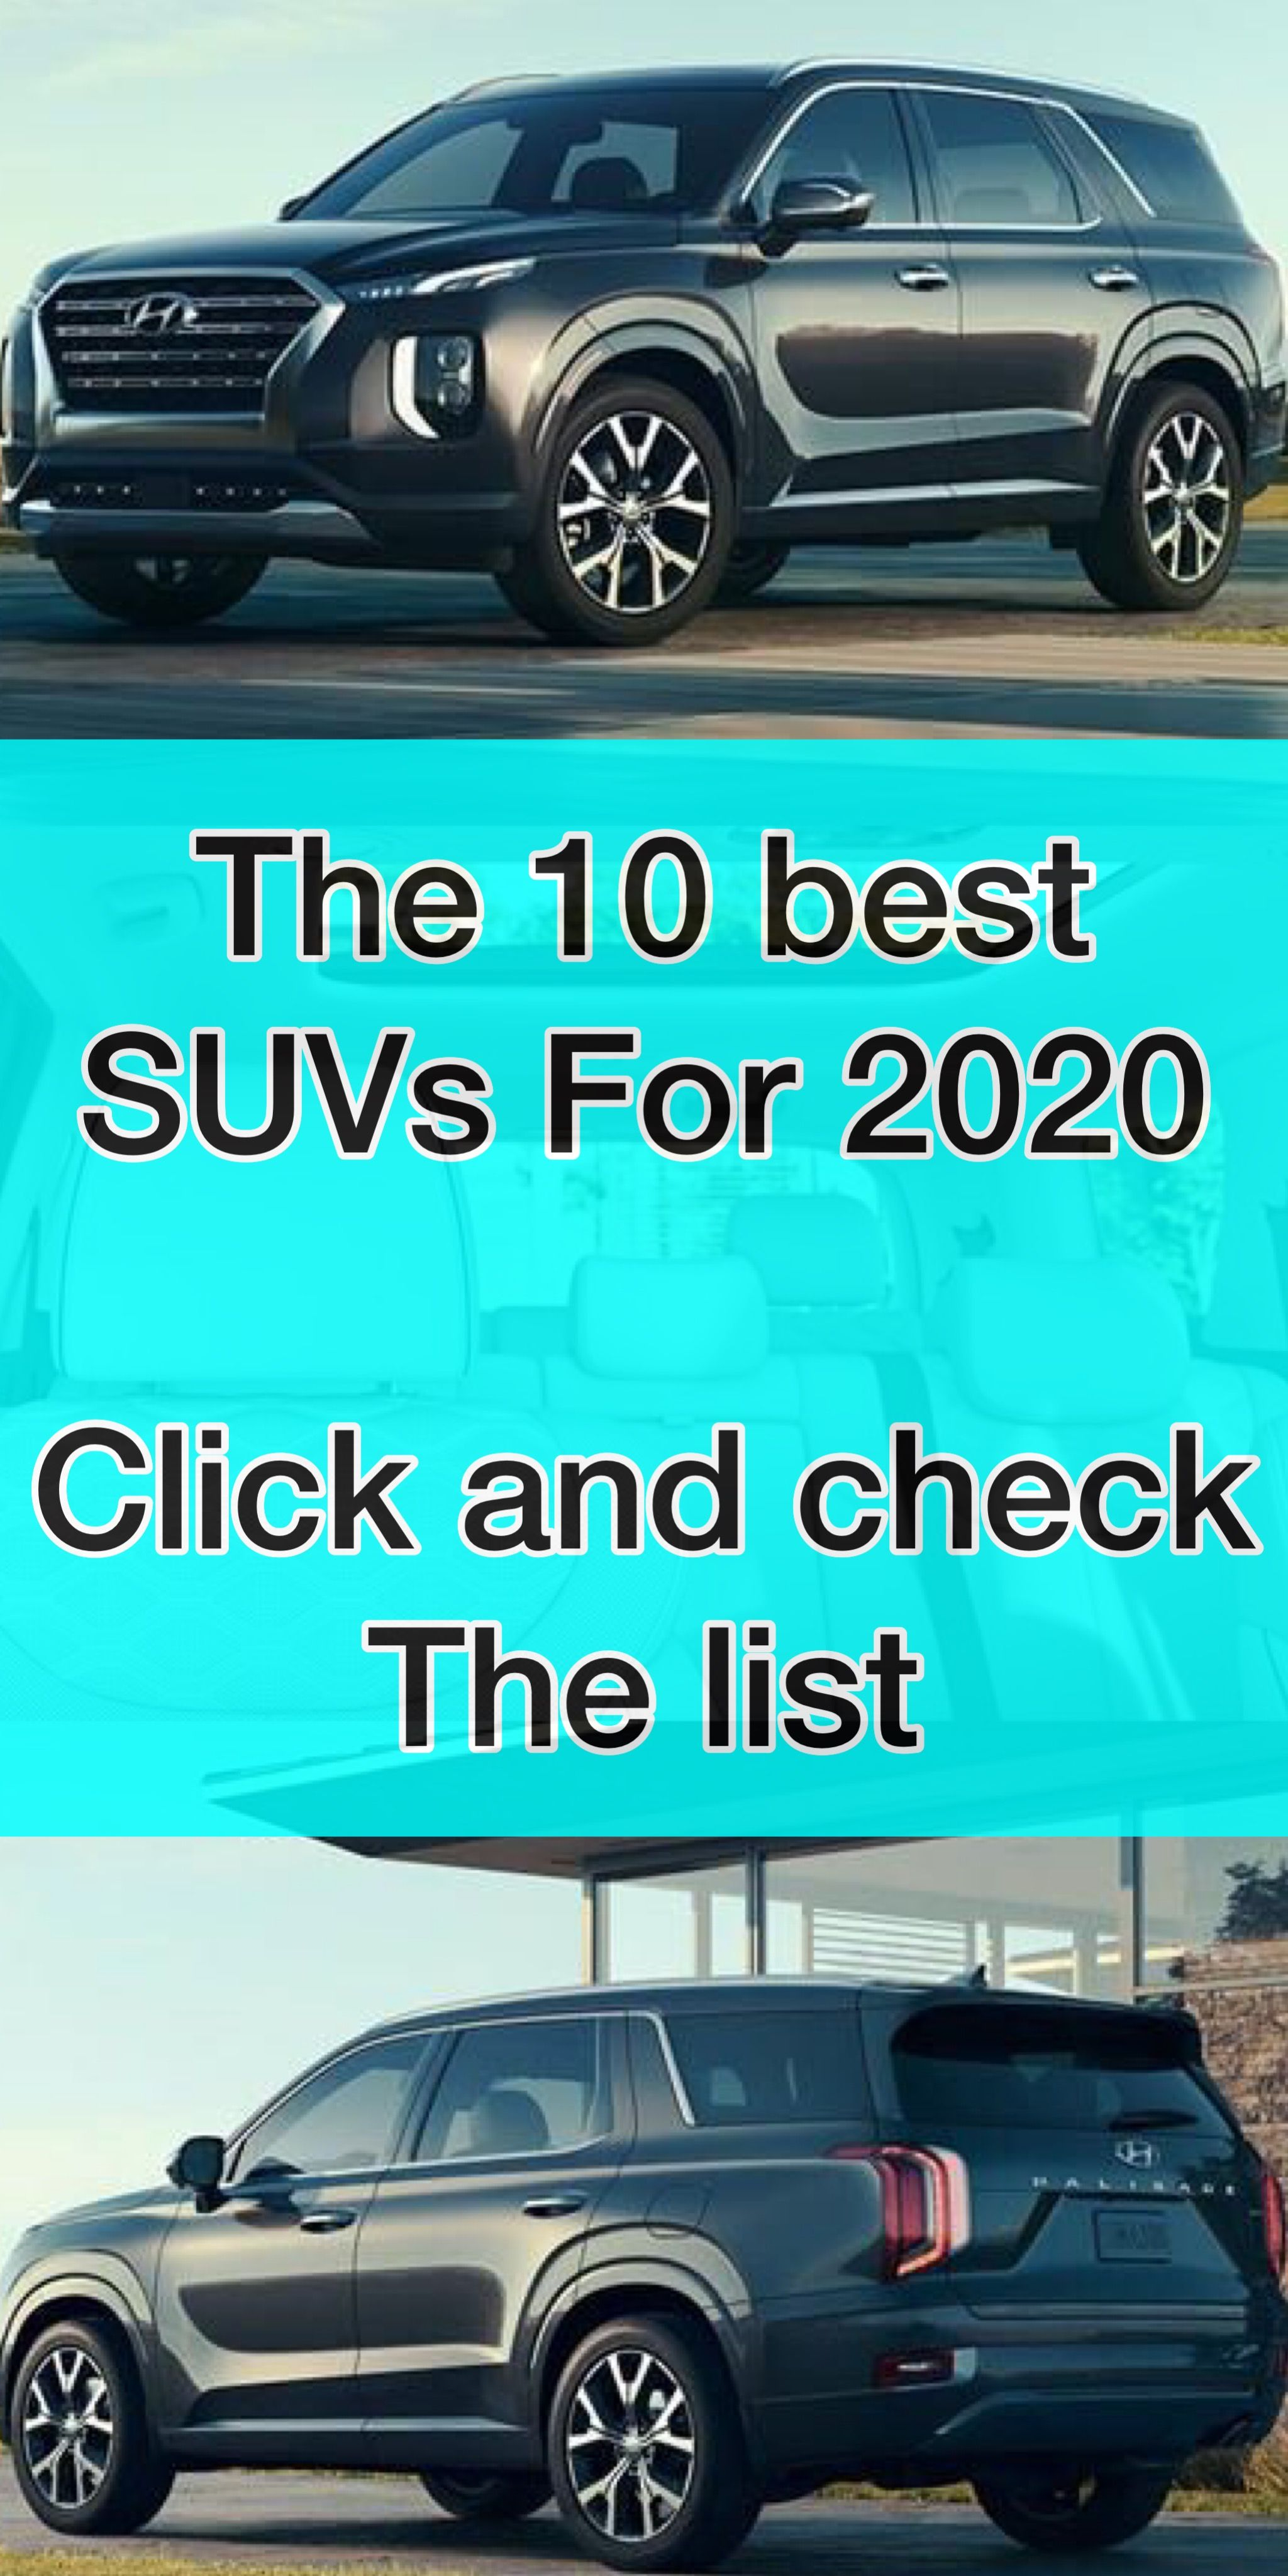 The 10 Safest Suvs You Can Buy It Now 2020 In 2020 Safest Suv Fast Cars Safe Cars